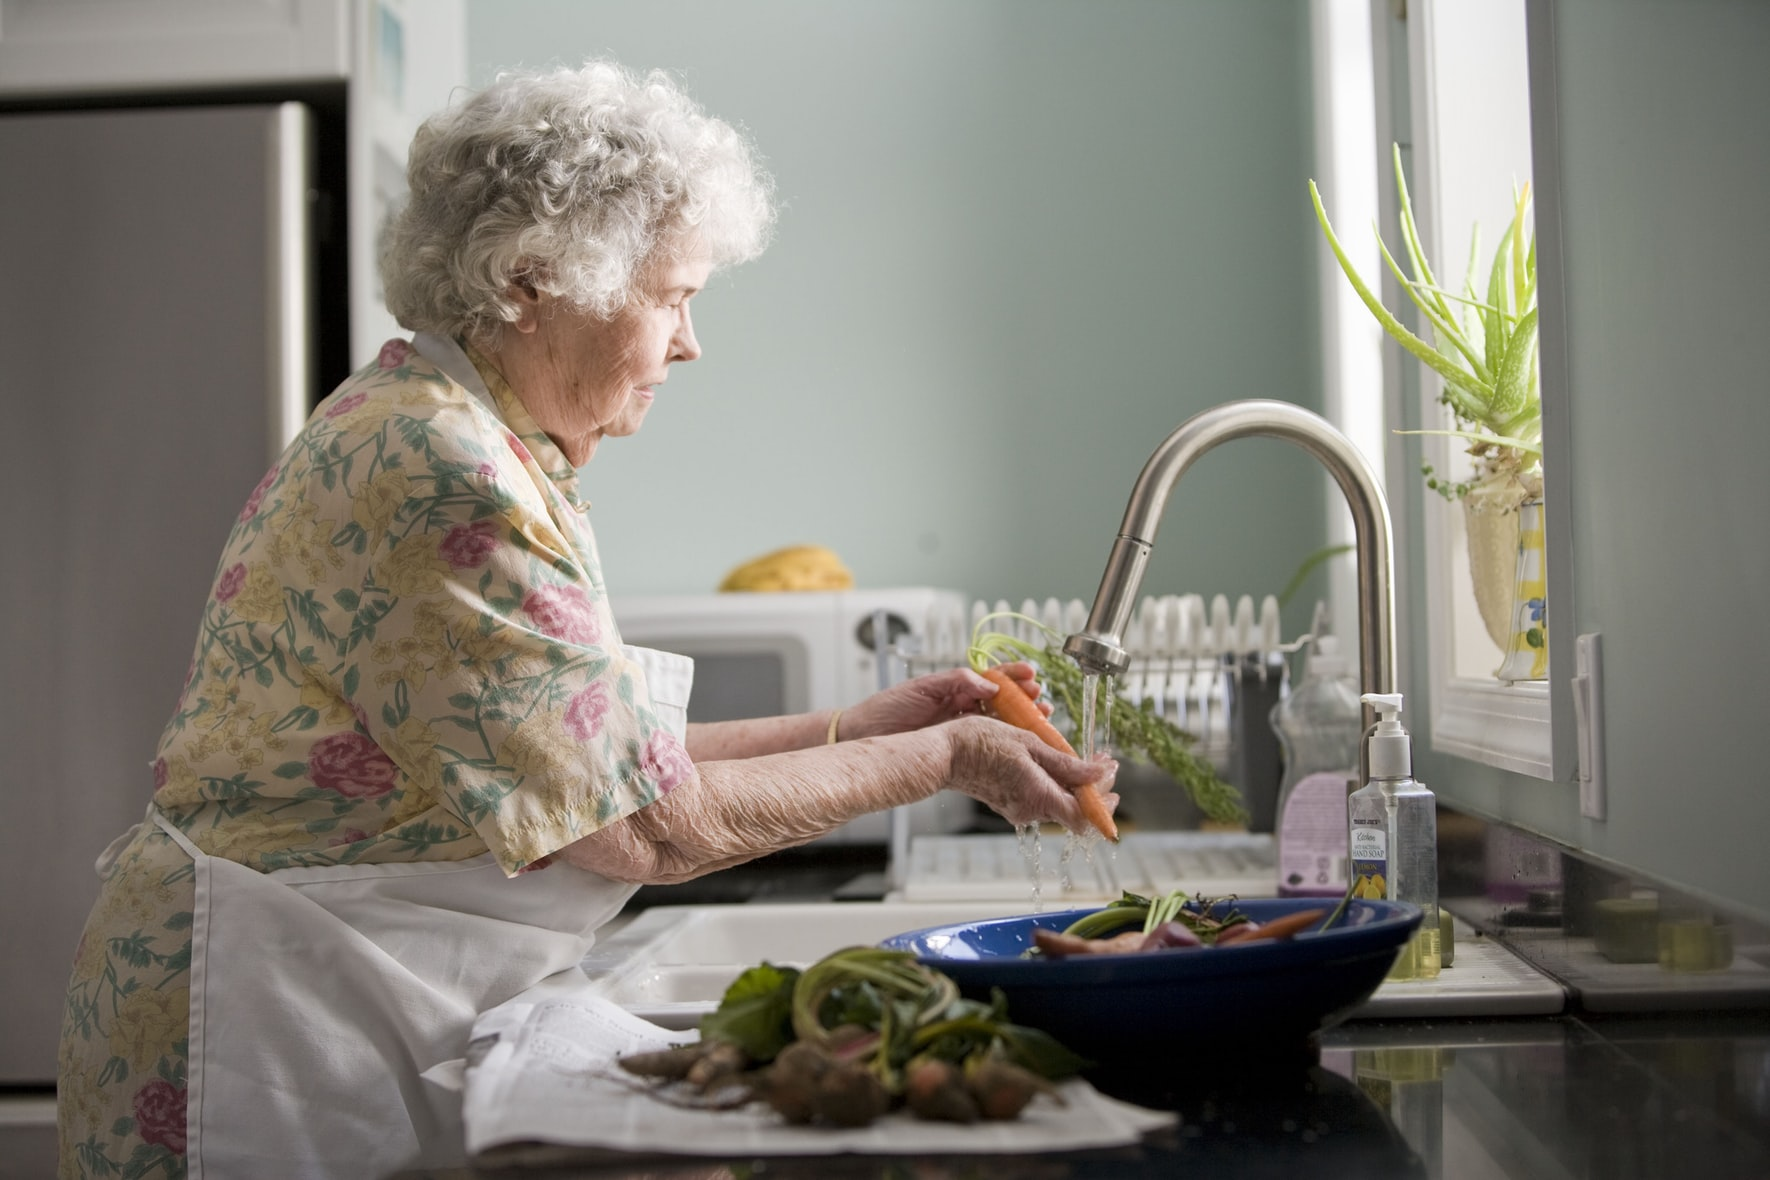 A senior woman washing carrots and other vegetables in the kitchen sink in front of the window.